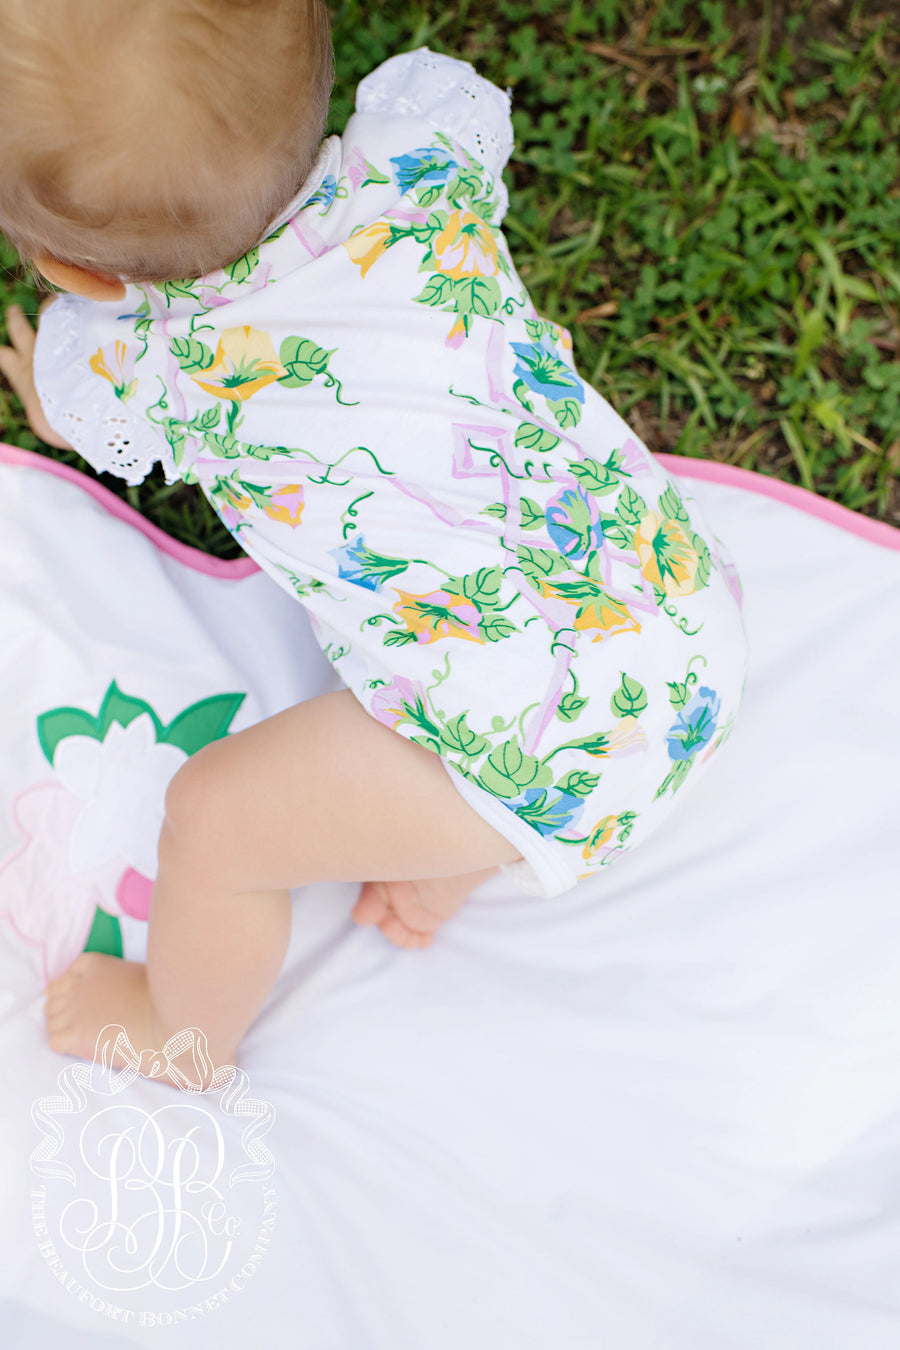 Tummy Time Throw - Worth Avenue White with Bird and Flower Applique